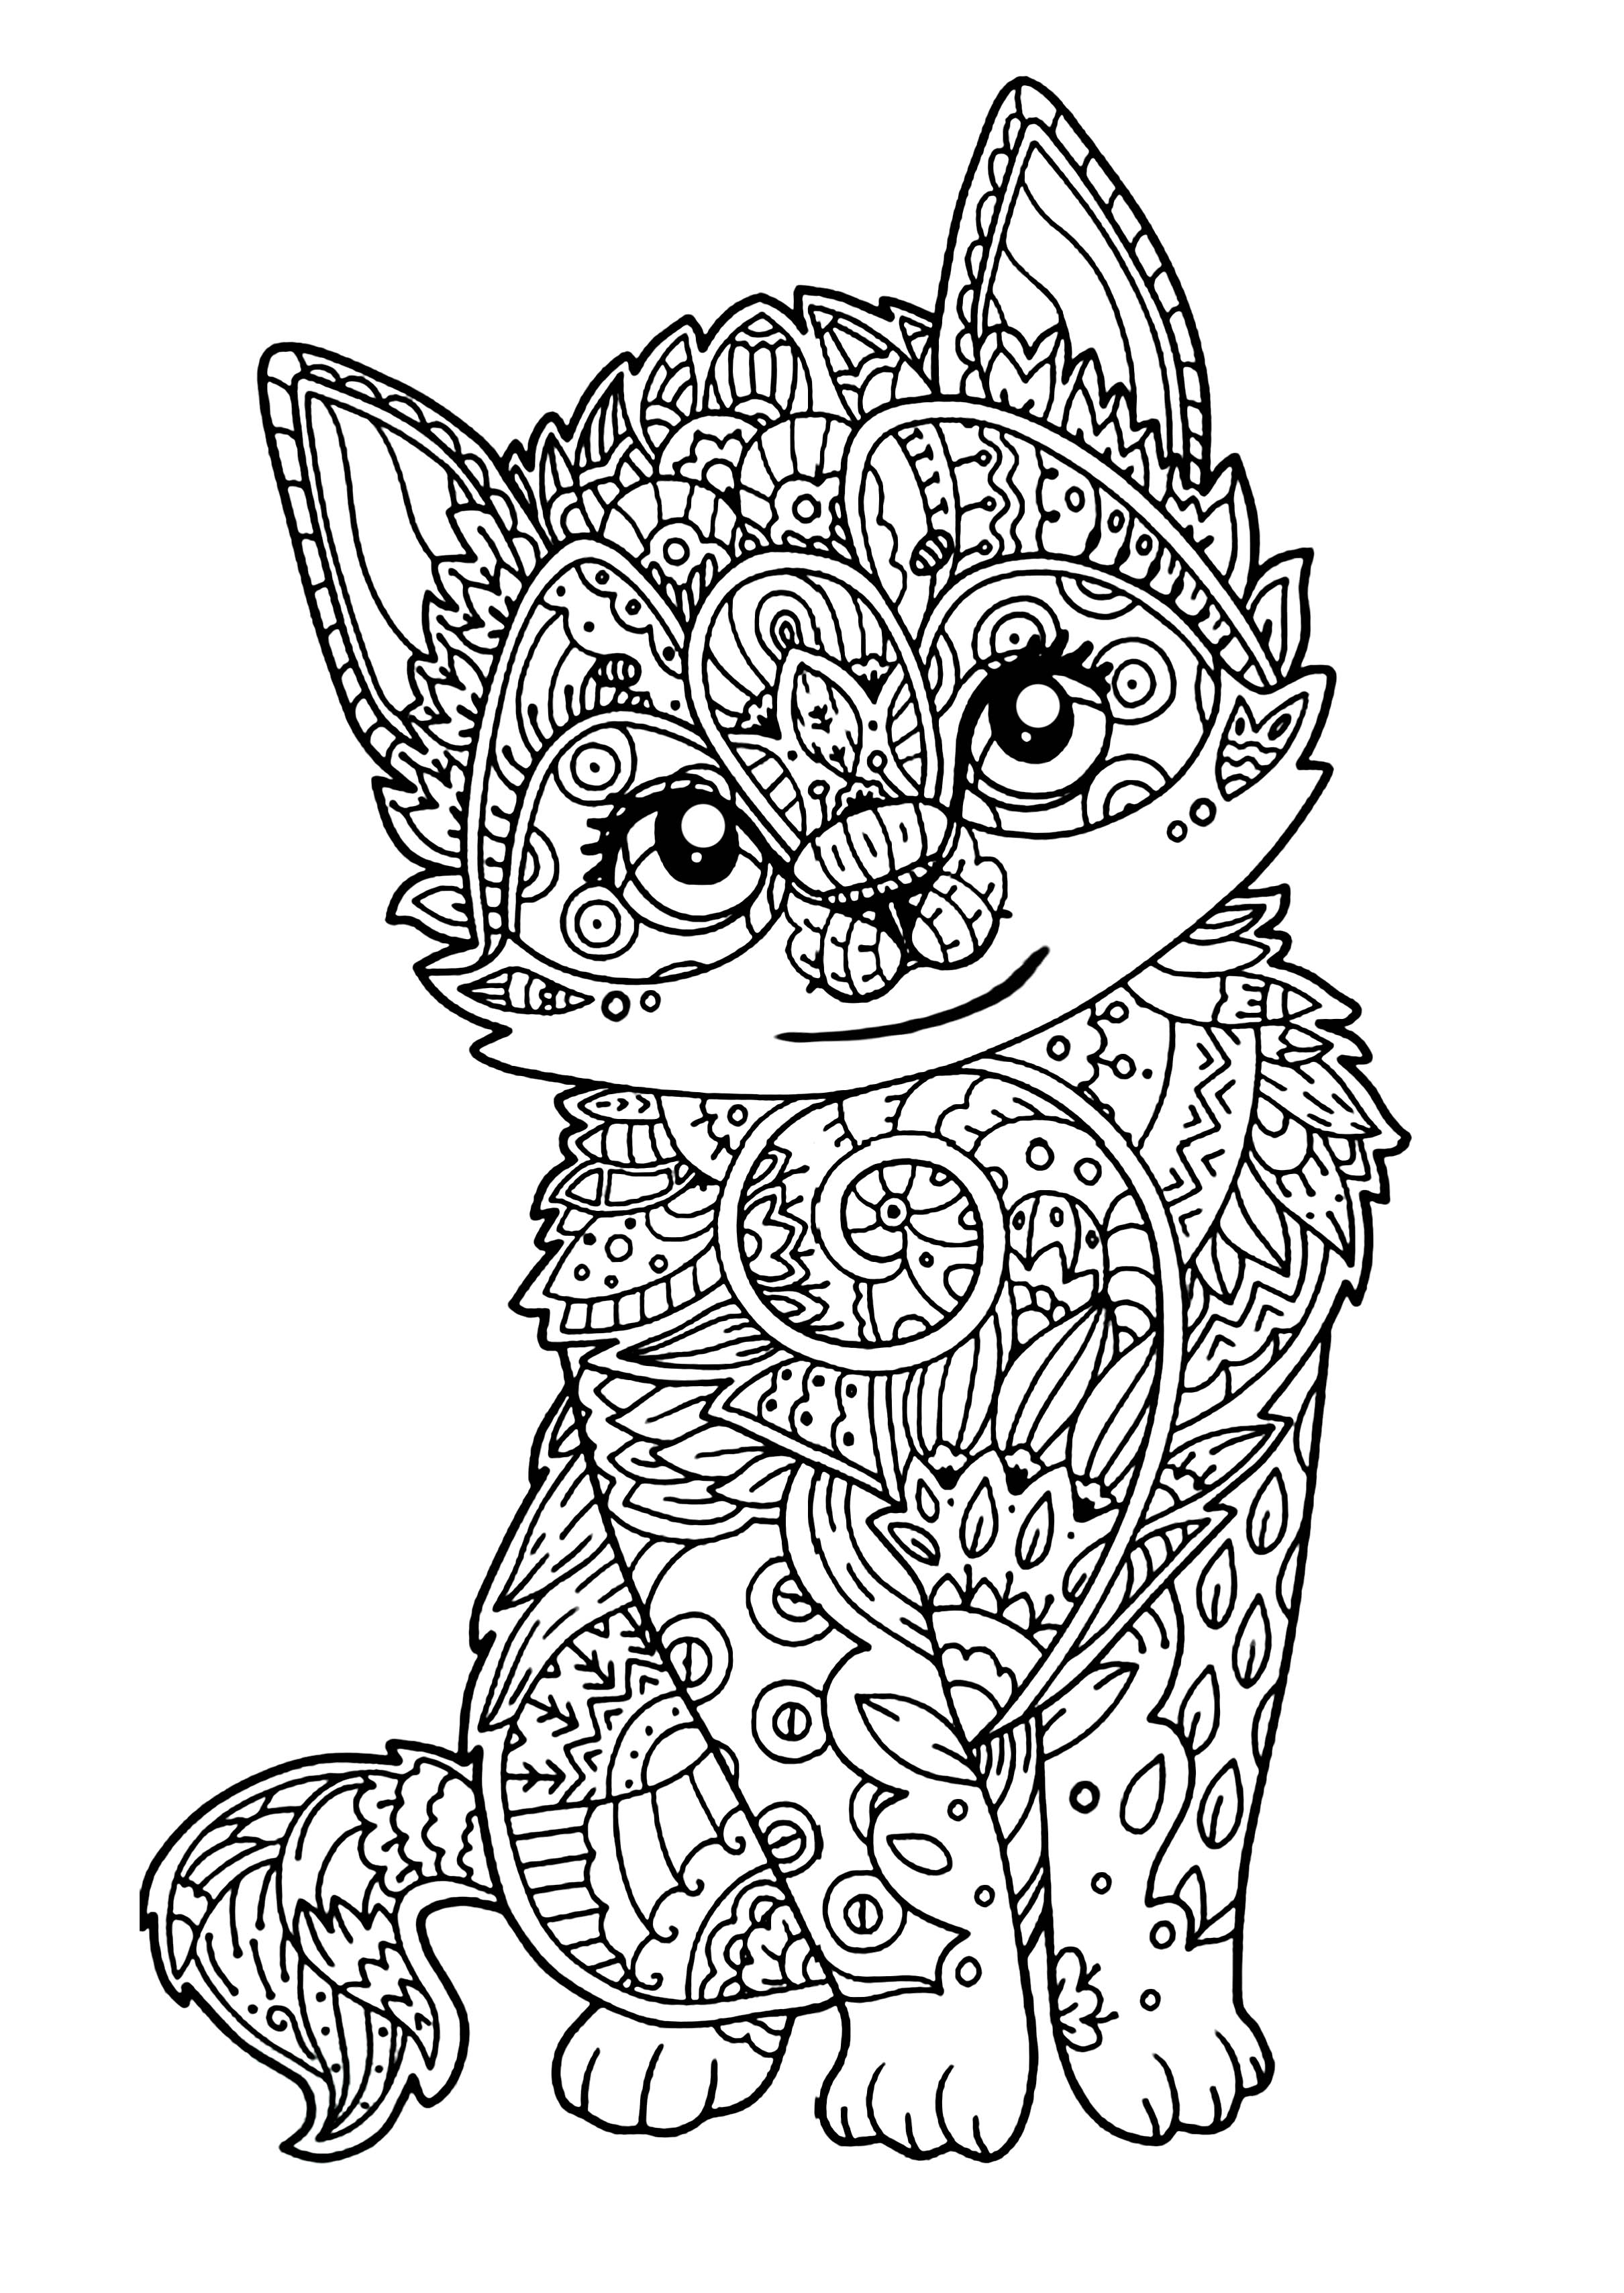 Mignon chaton chats coloriages difficiles pour adultes - Chat a colorier ...